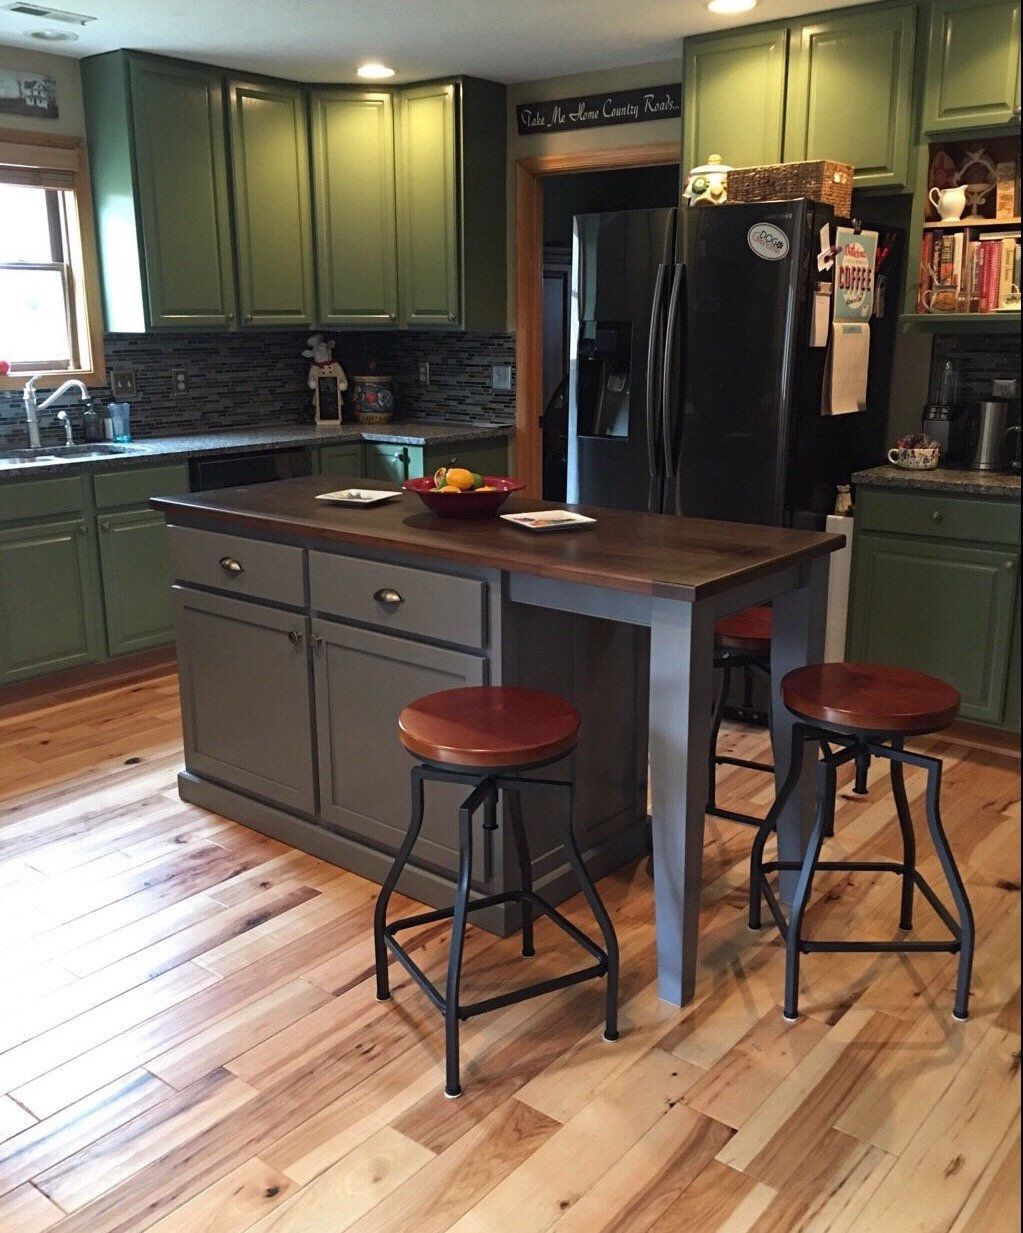 This Kitchen Island Cabinet Is 48 Wide By 24 Deep And Features